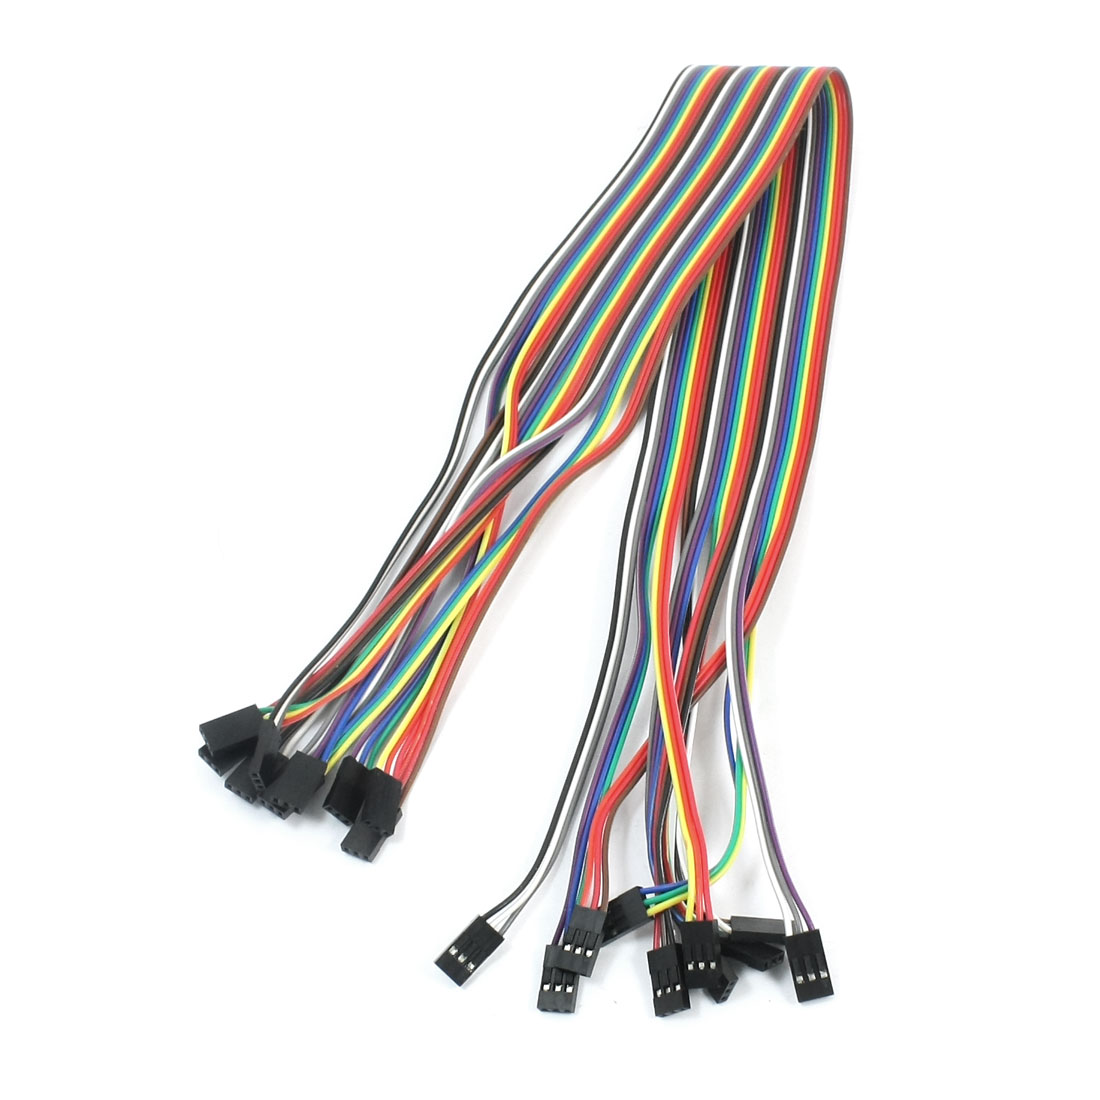 10pcs 3P-3P Female to Female Breadboard Connect Test Jumper Cable Wire 50cm